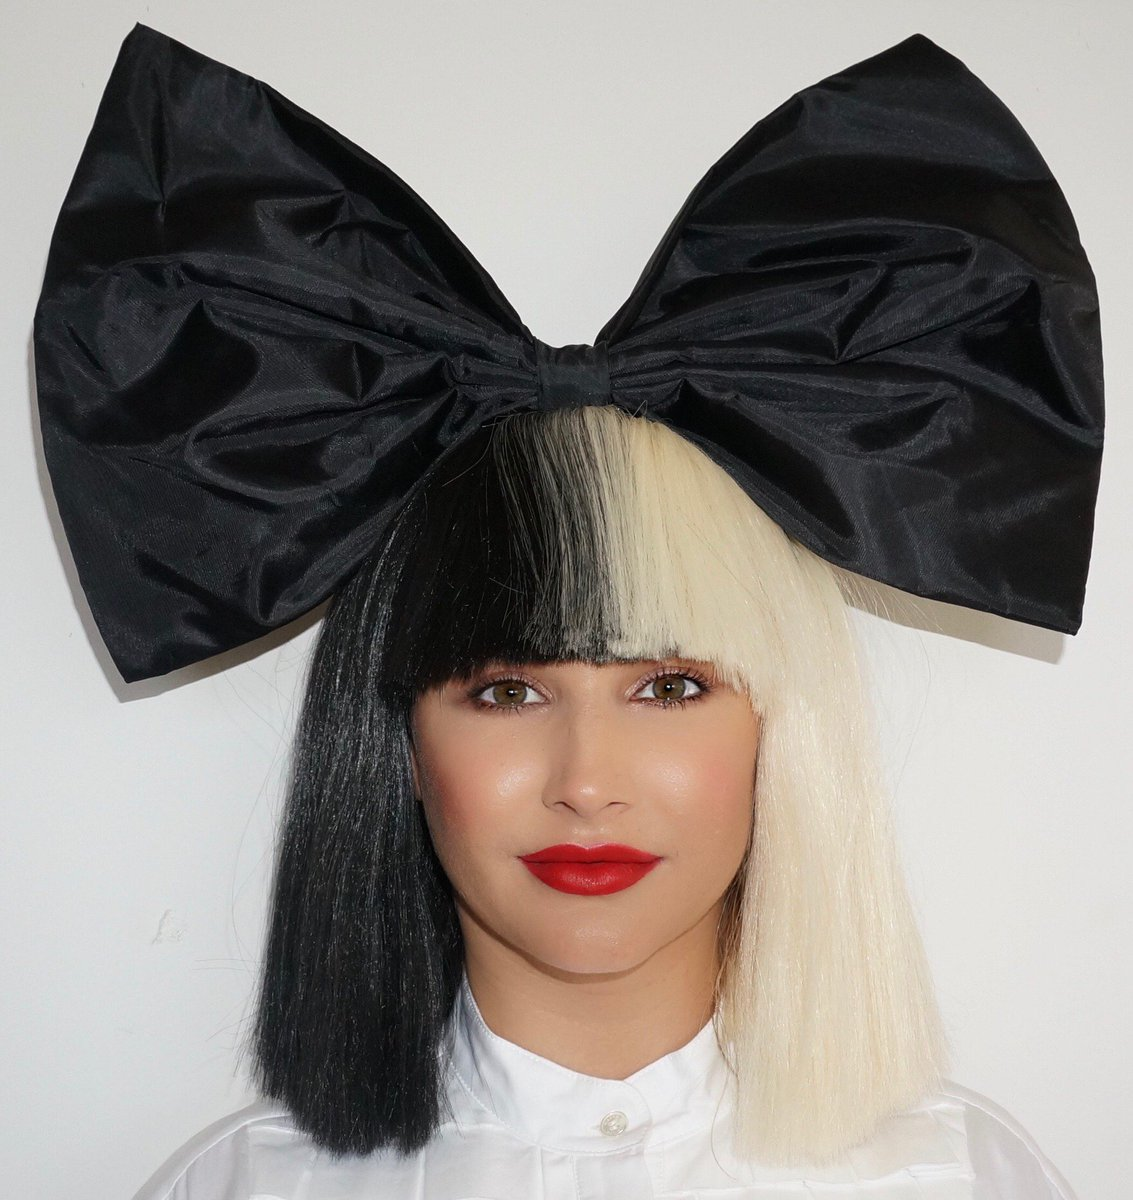 Don't be caught ???? without your Sia wig this Halloween https://t.co/bIWfHKddod - Team Sia https://t.co/jGV2buMLDr